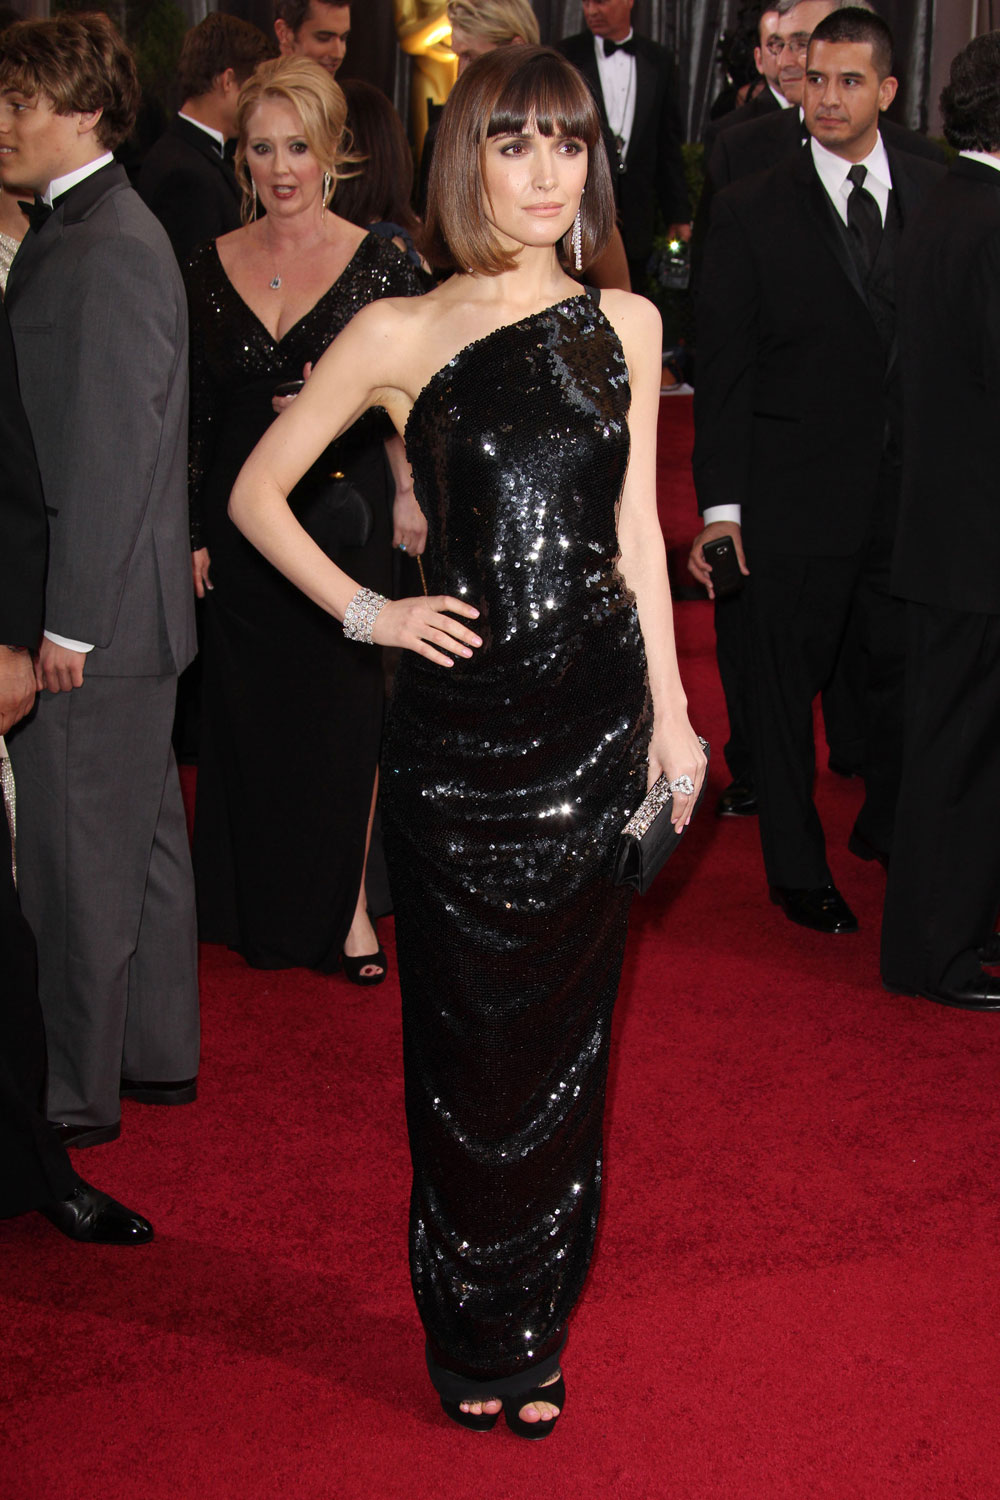 Wiig's costar Rose Byrne also brought it last night.